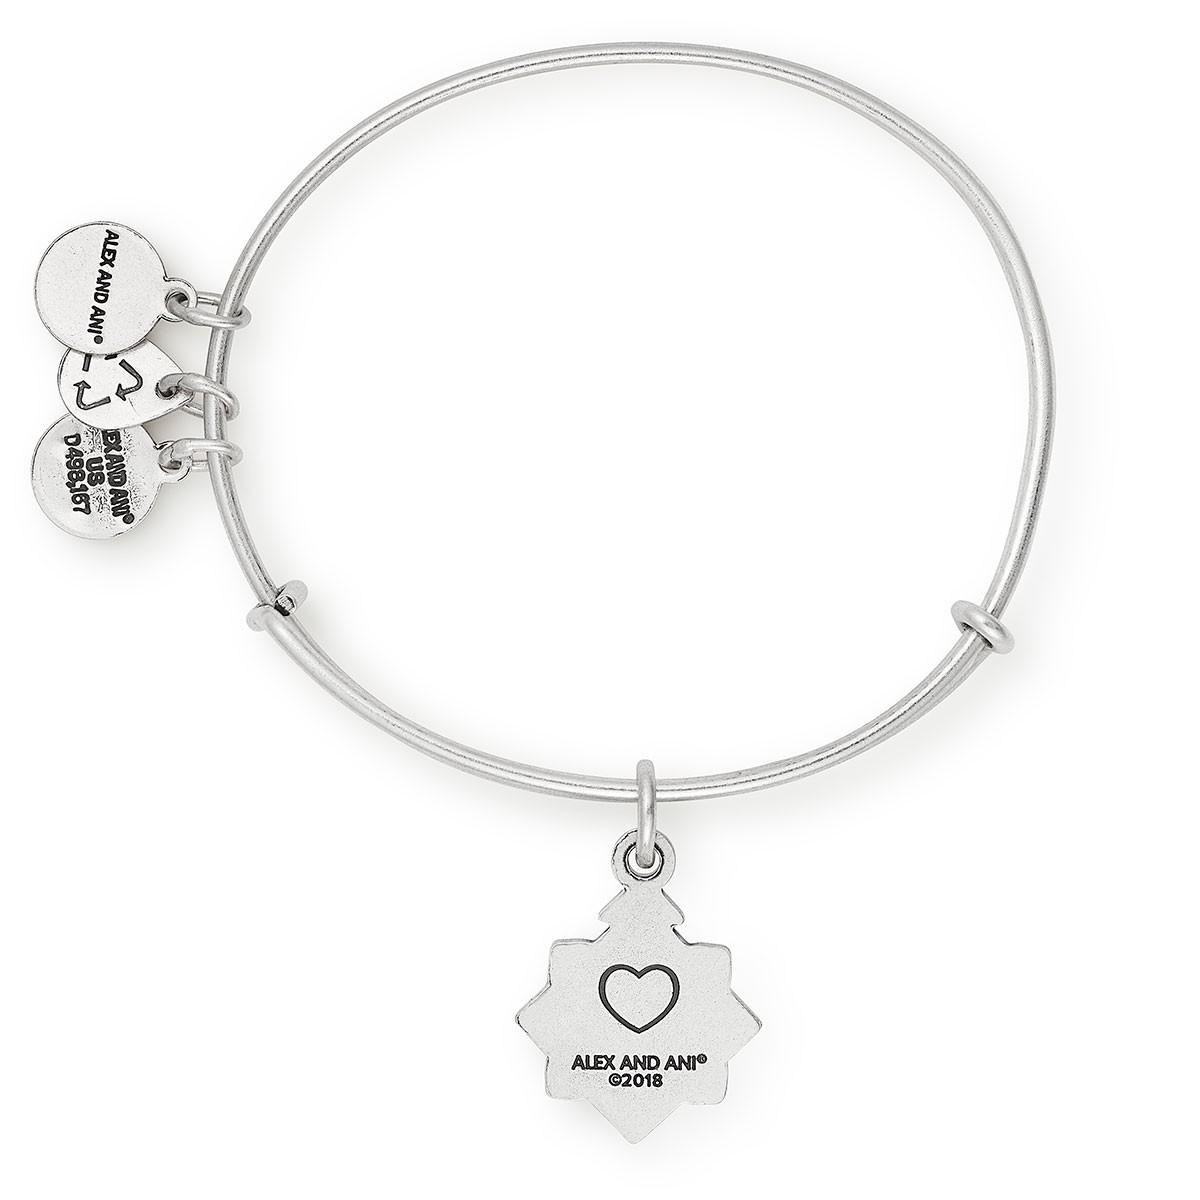 Alex And Ani Metallic Friend Charm Bangle Lyst View Fullscreen